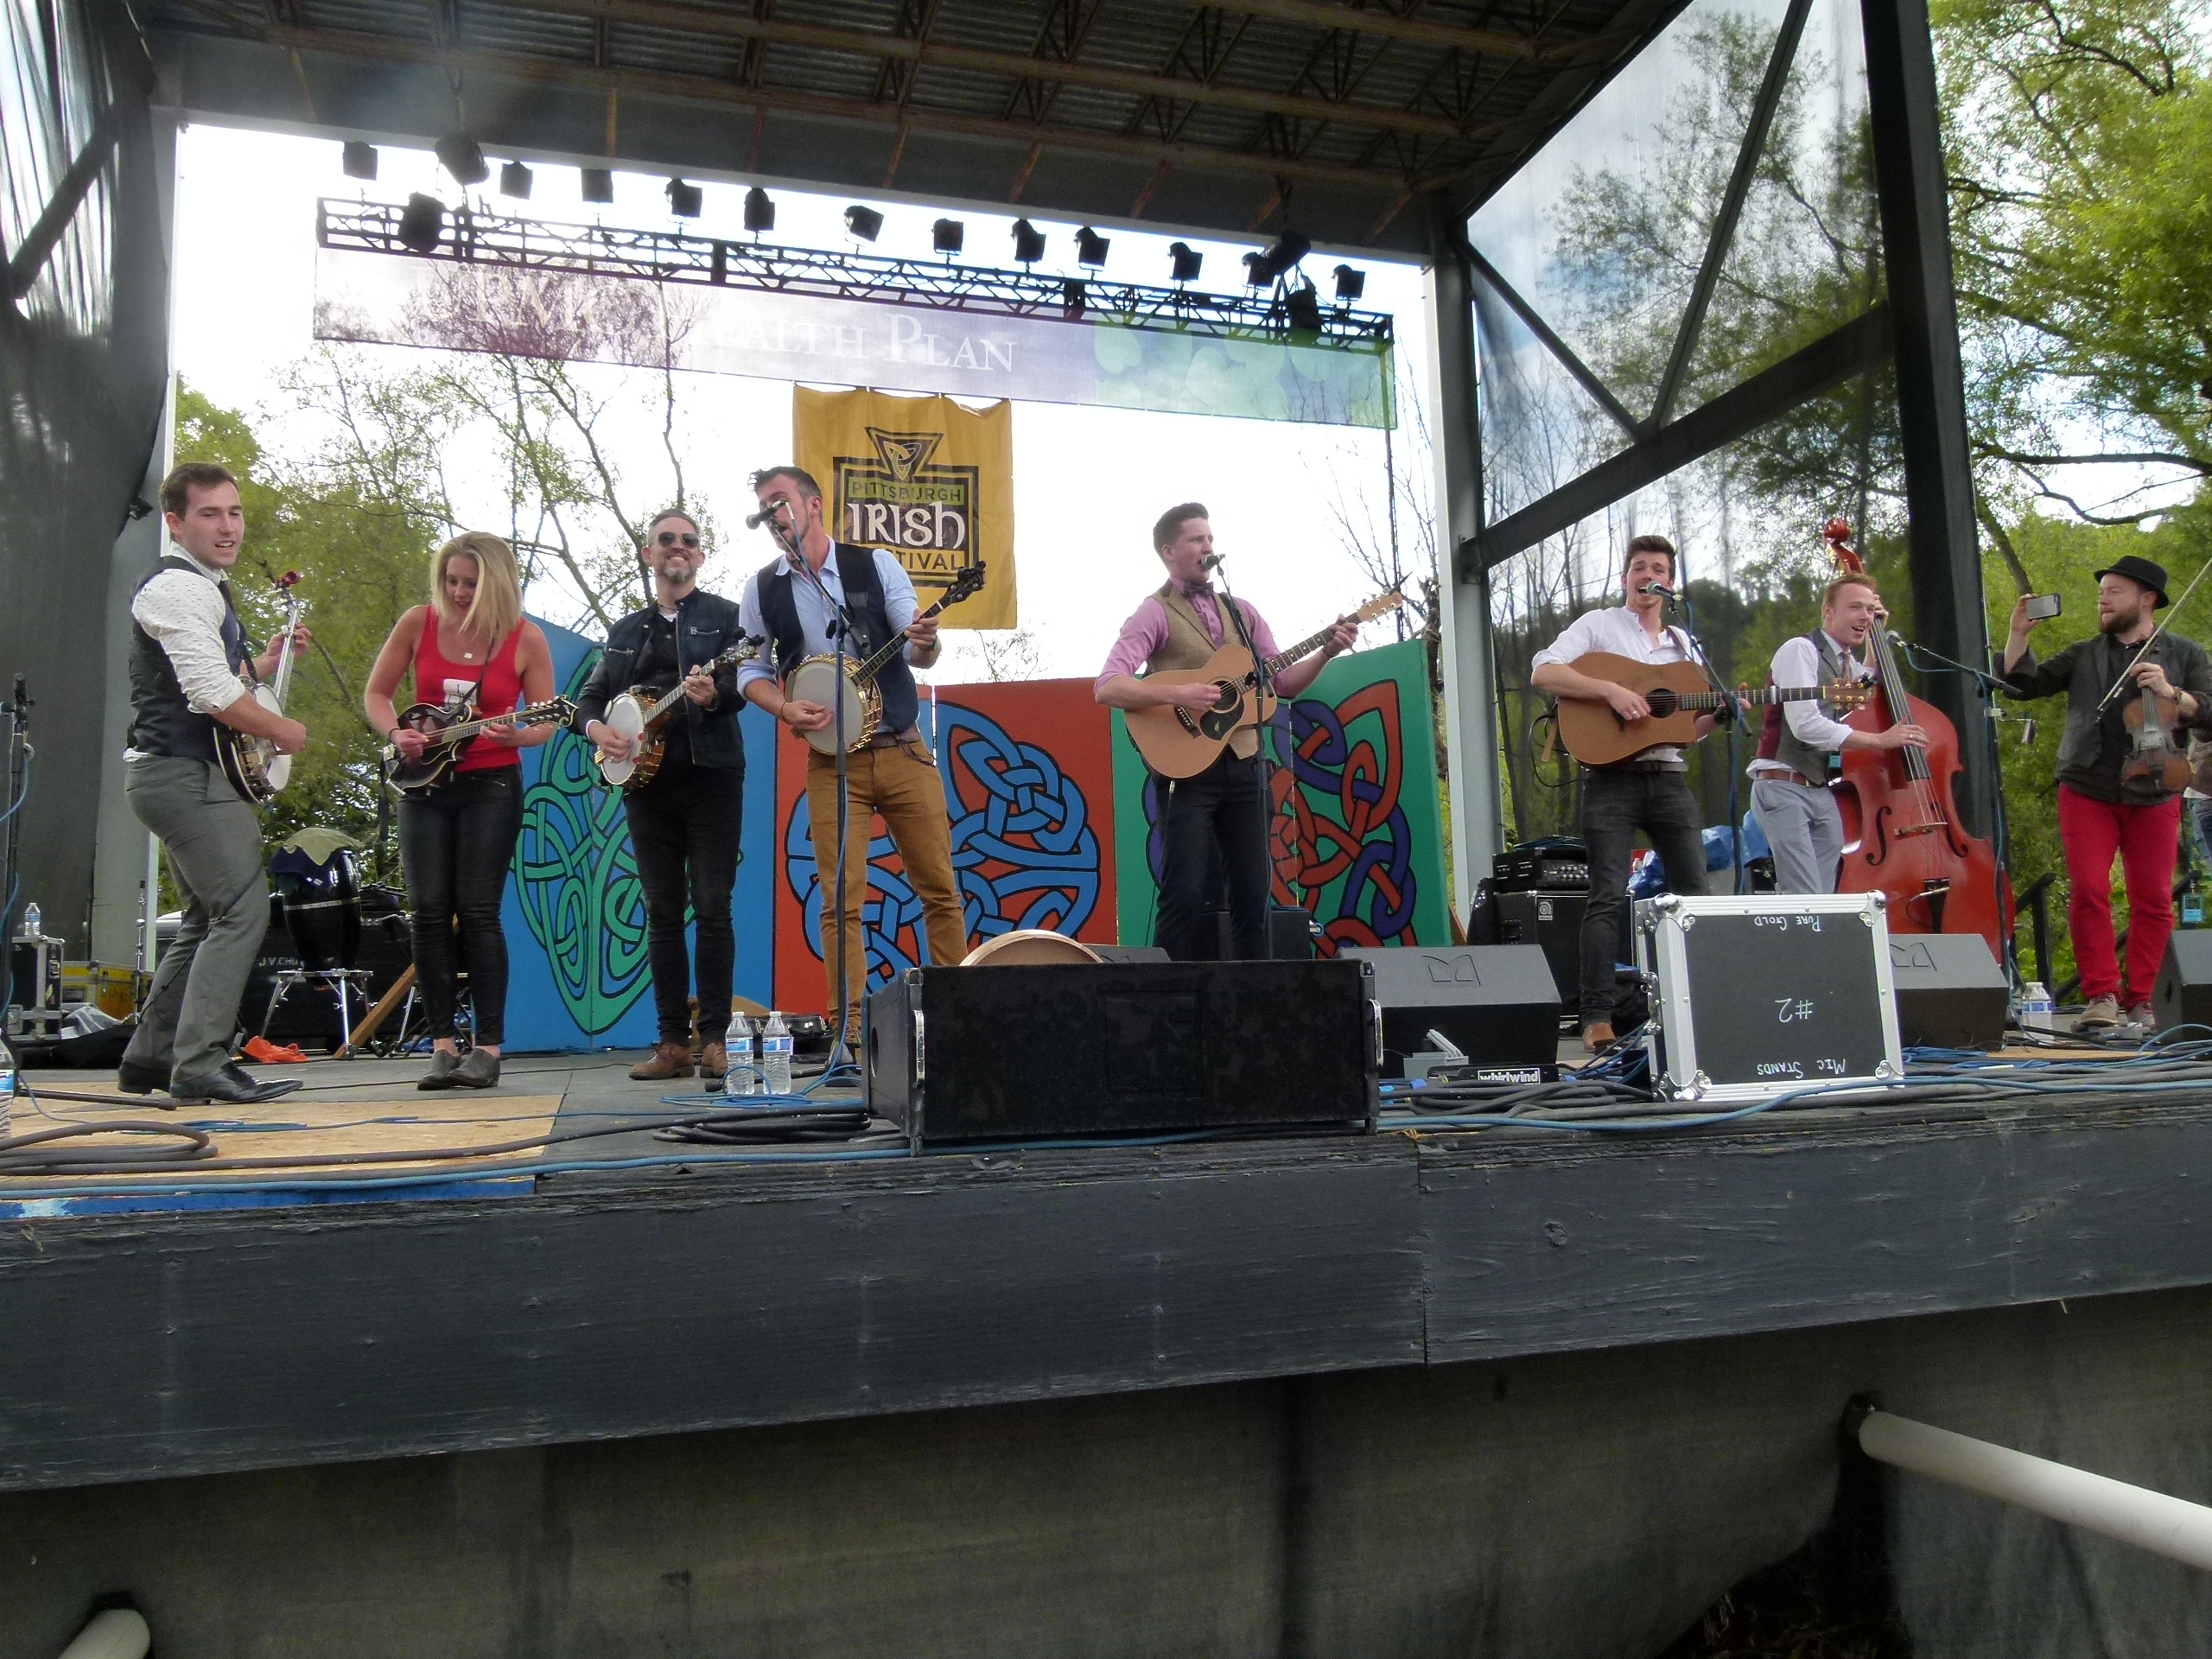 We Banjo 3 and performers from other groups jamming together.